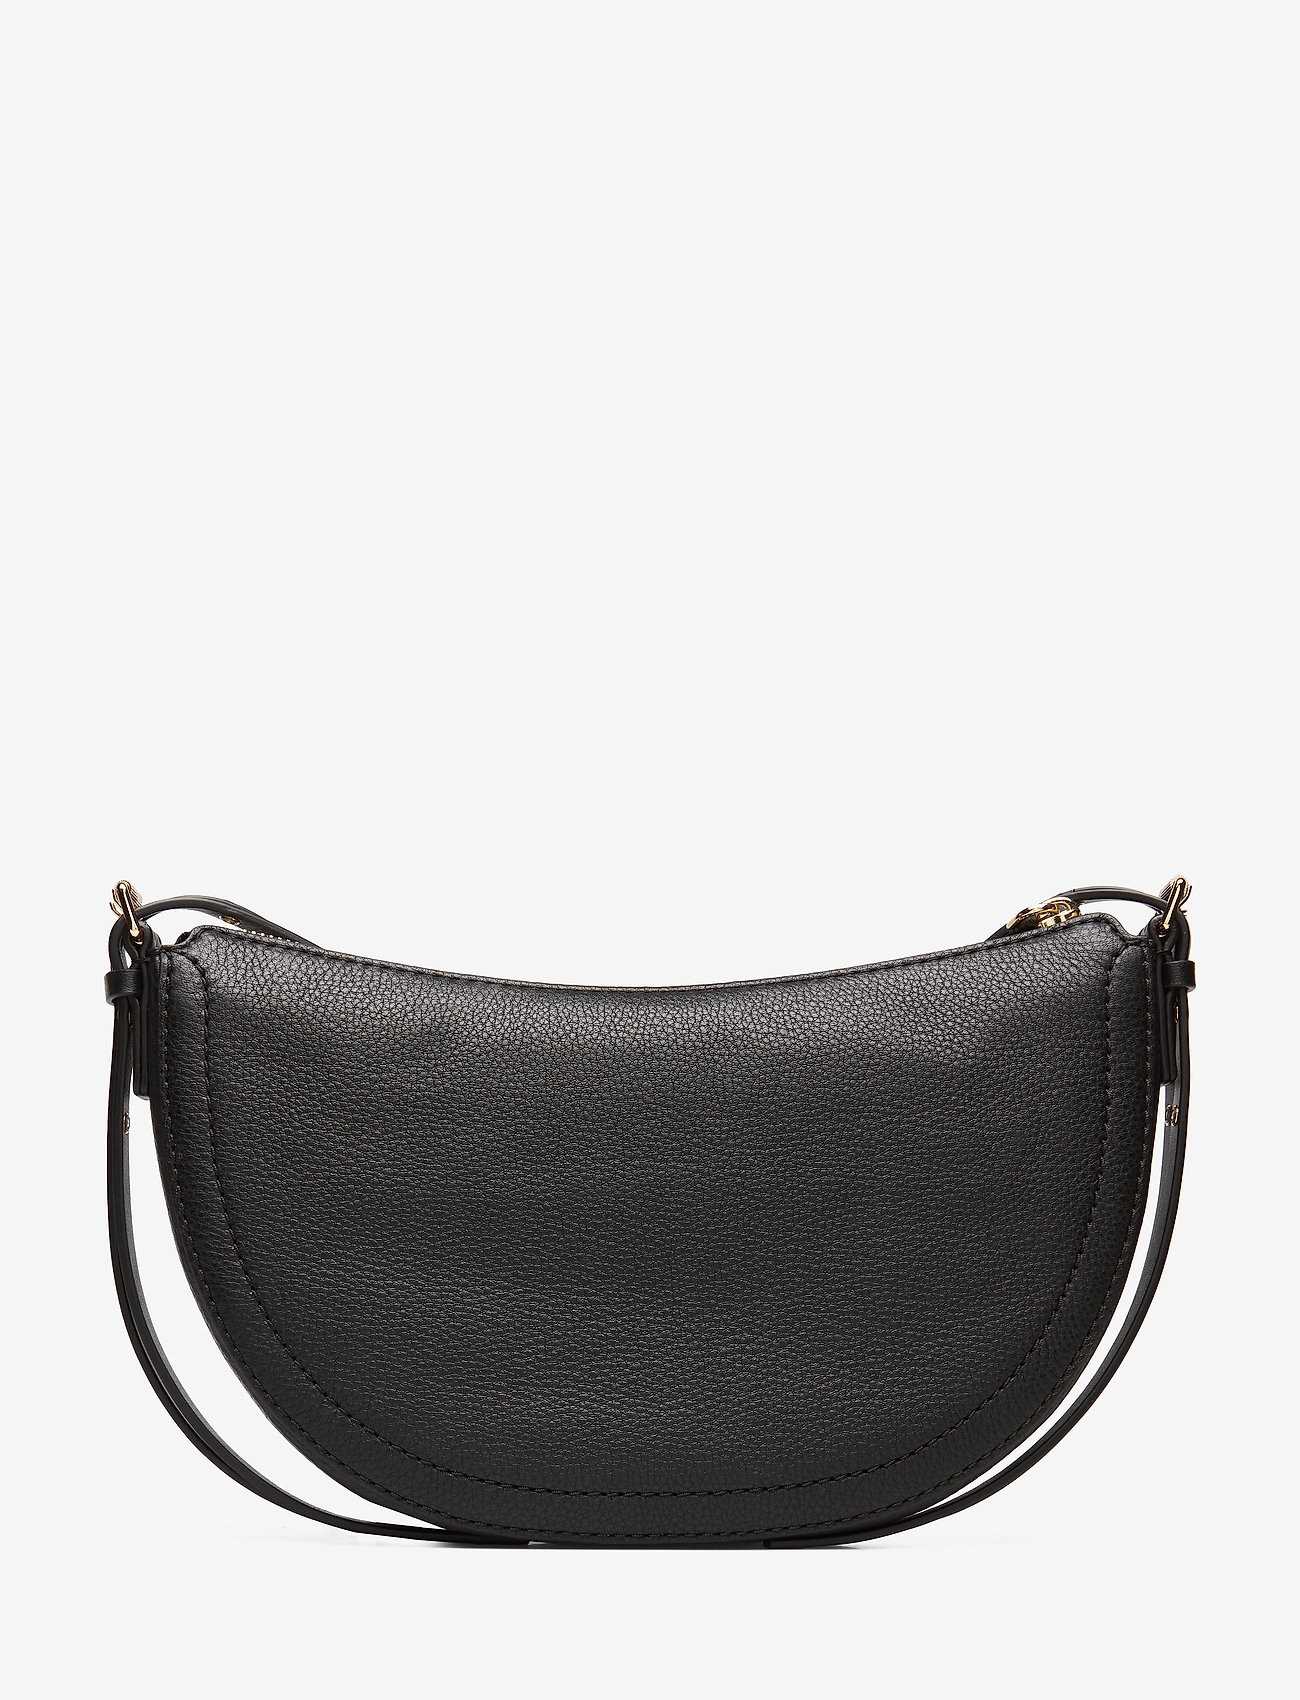 Michael Kors Bags Sm Msgr - Shoulder